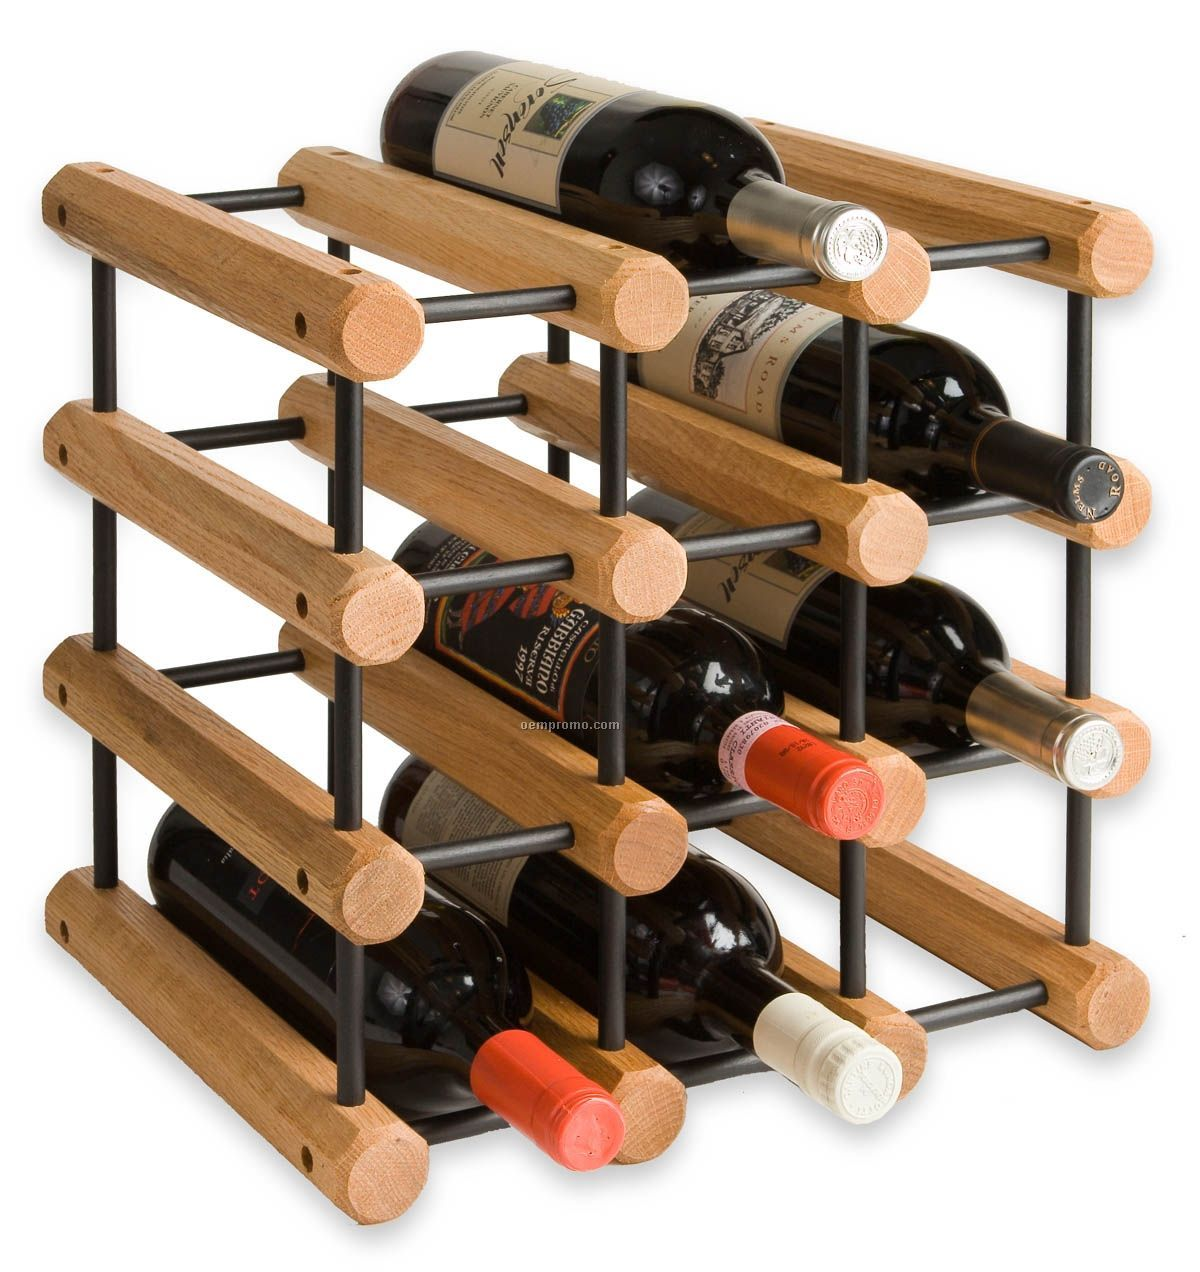 40 Wine Bottle Storage Rack Penguin China Wholesale 40